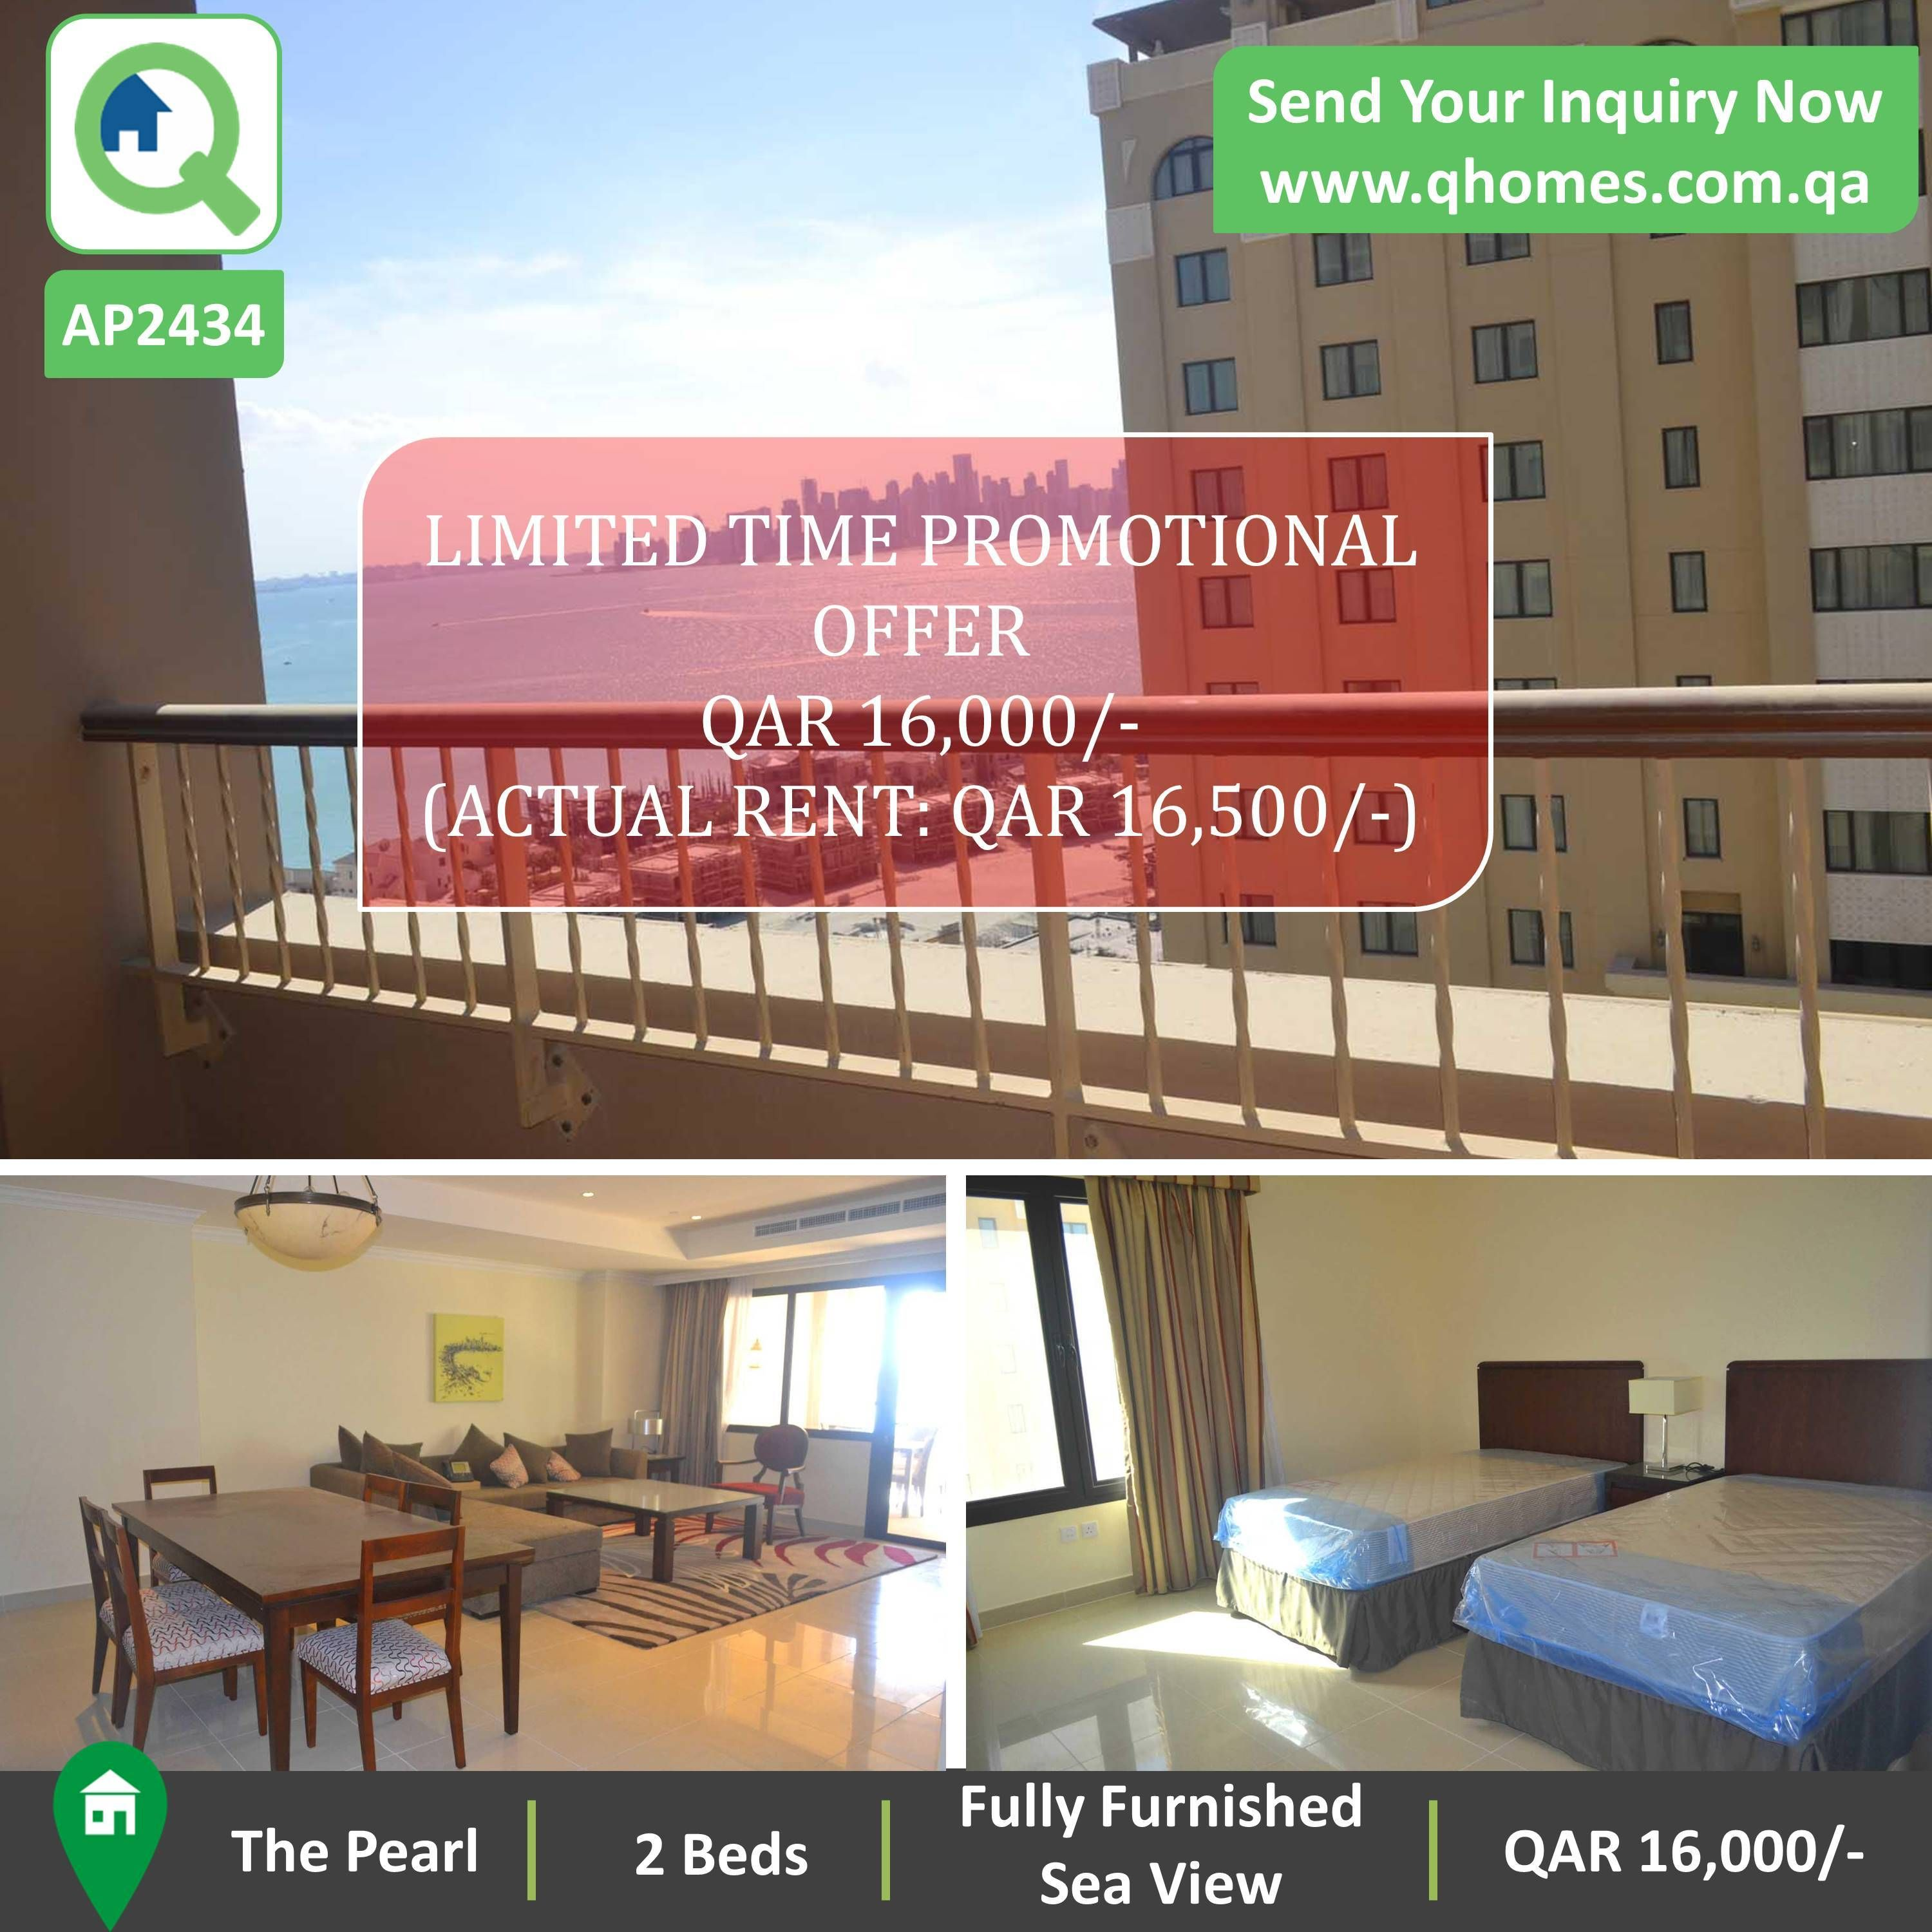 Apartment for Rent in Pearl Qatar: Fully Furnished 2 Beds ...